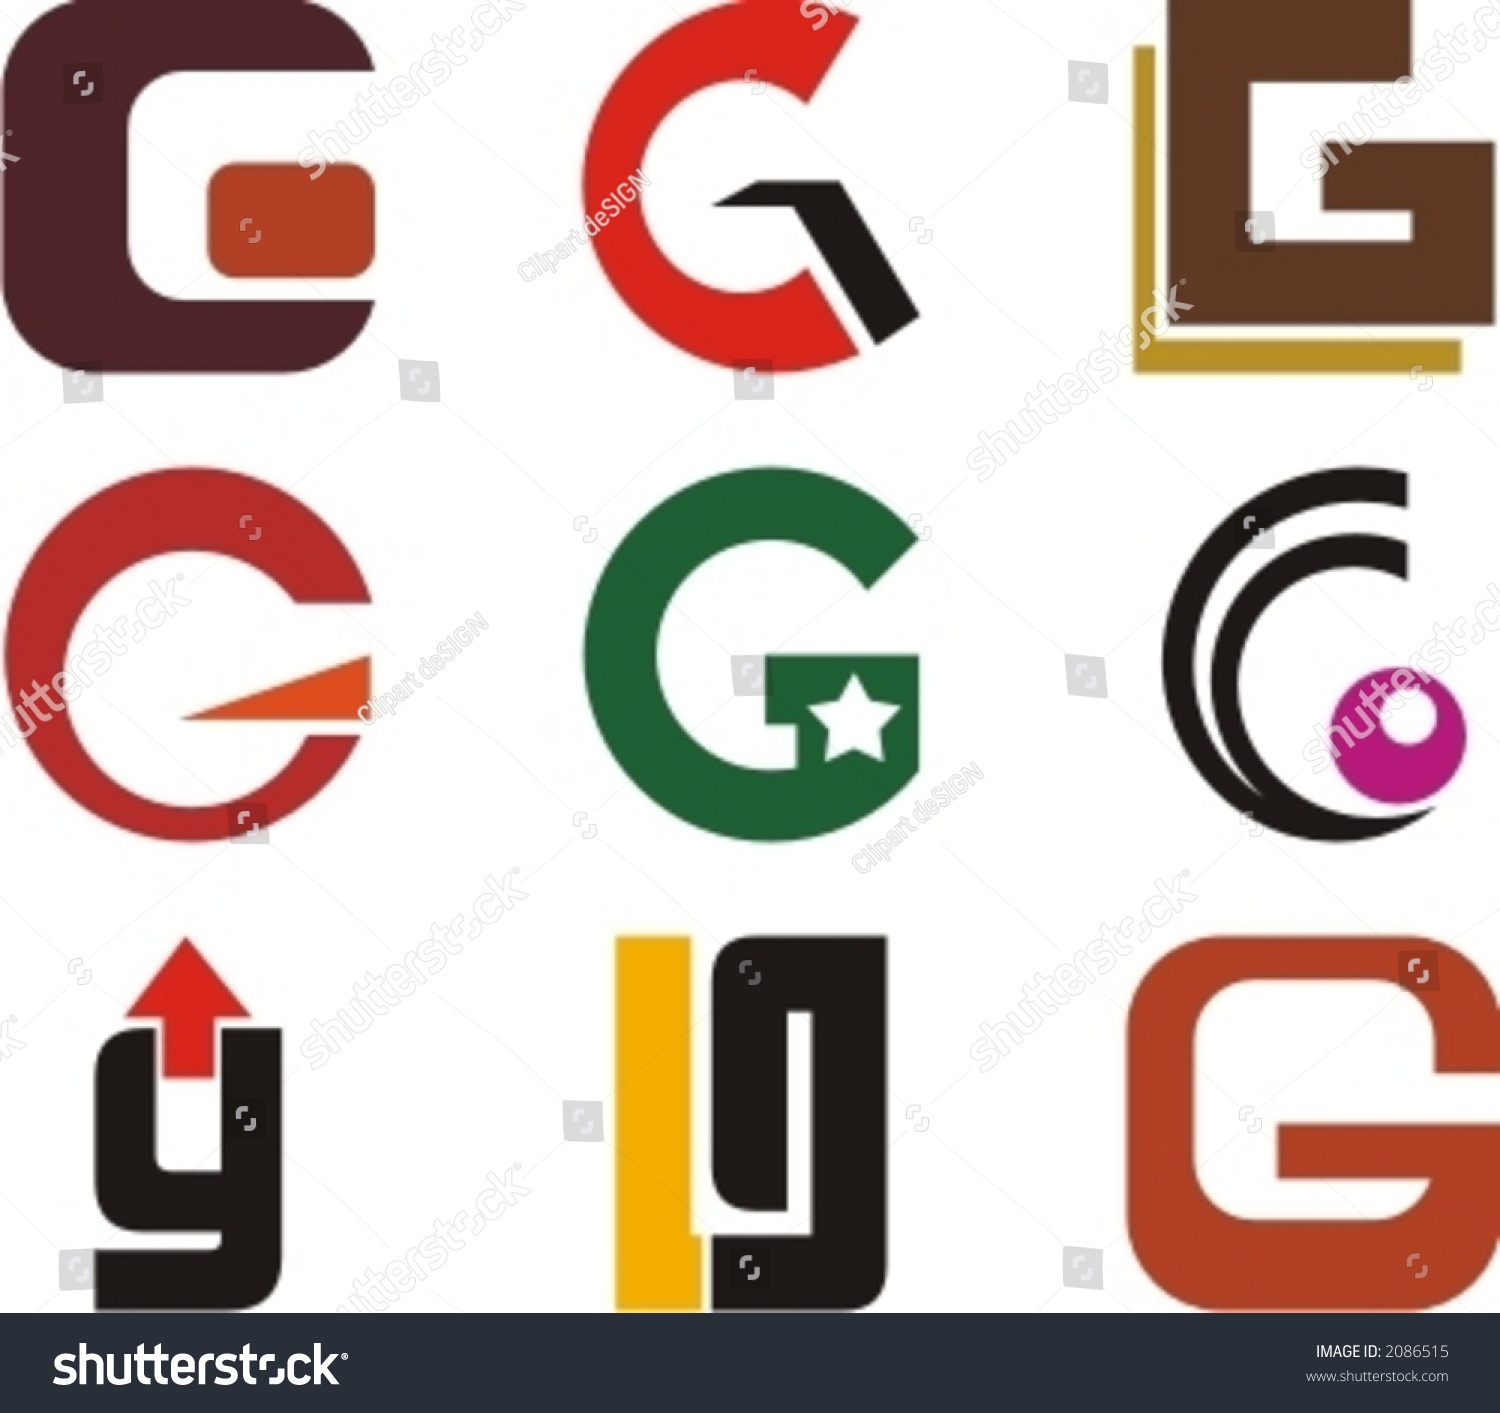 Letters That Start With The Letter L